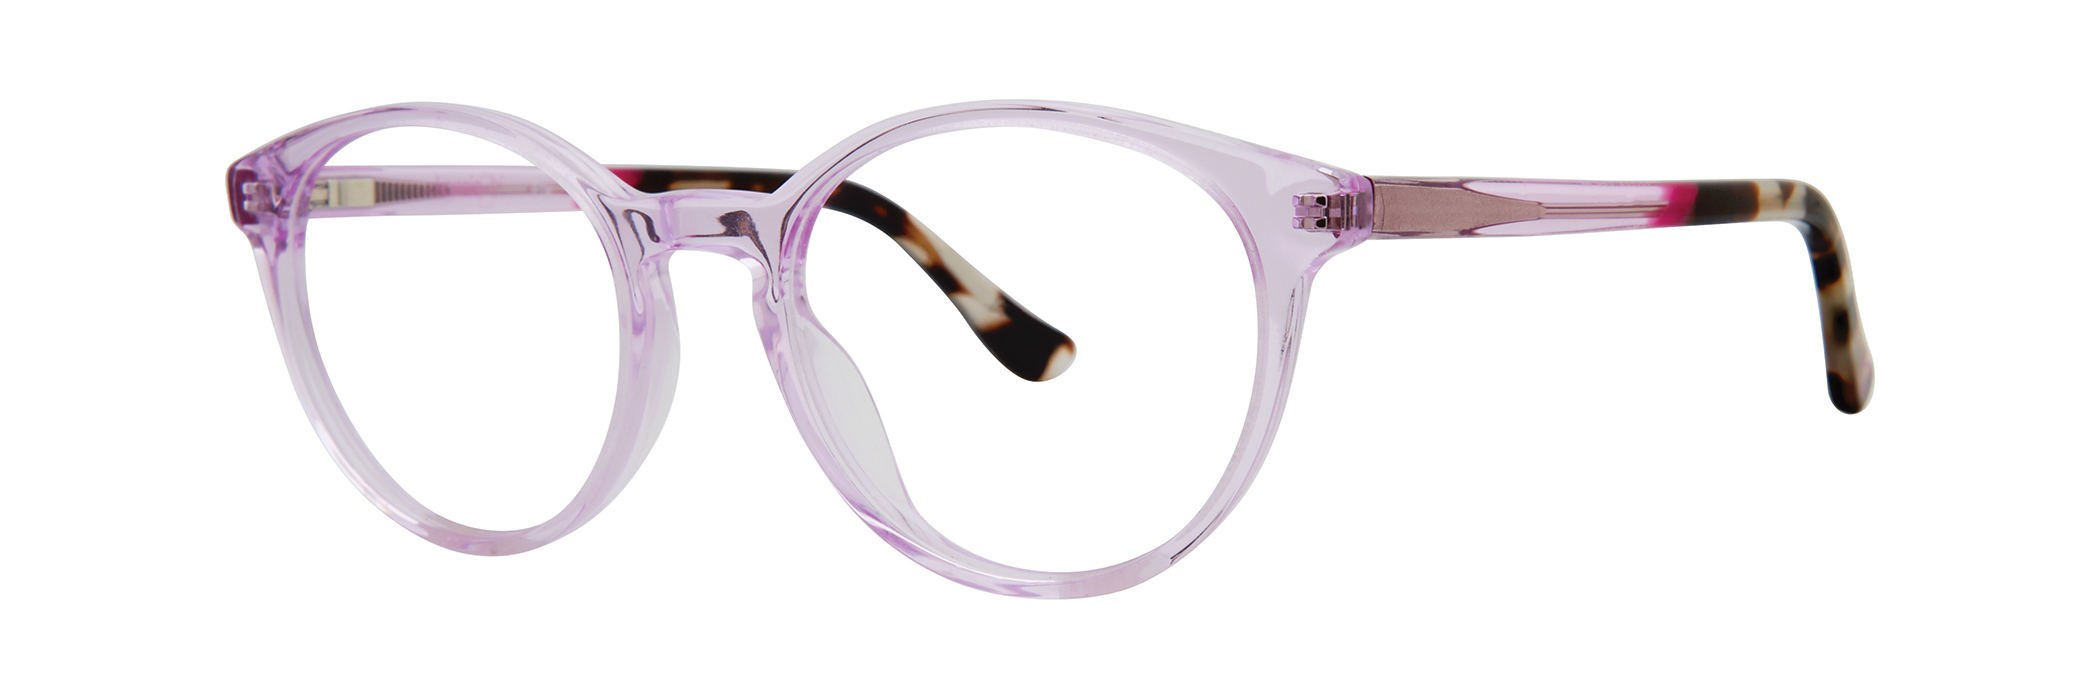 Eyeglasses Kensie Splatter Purple